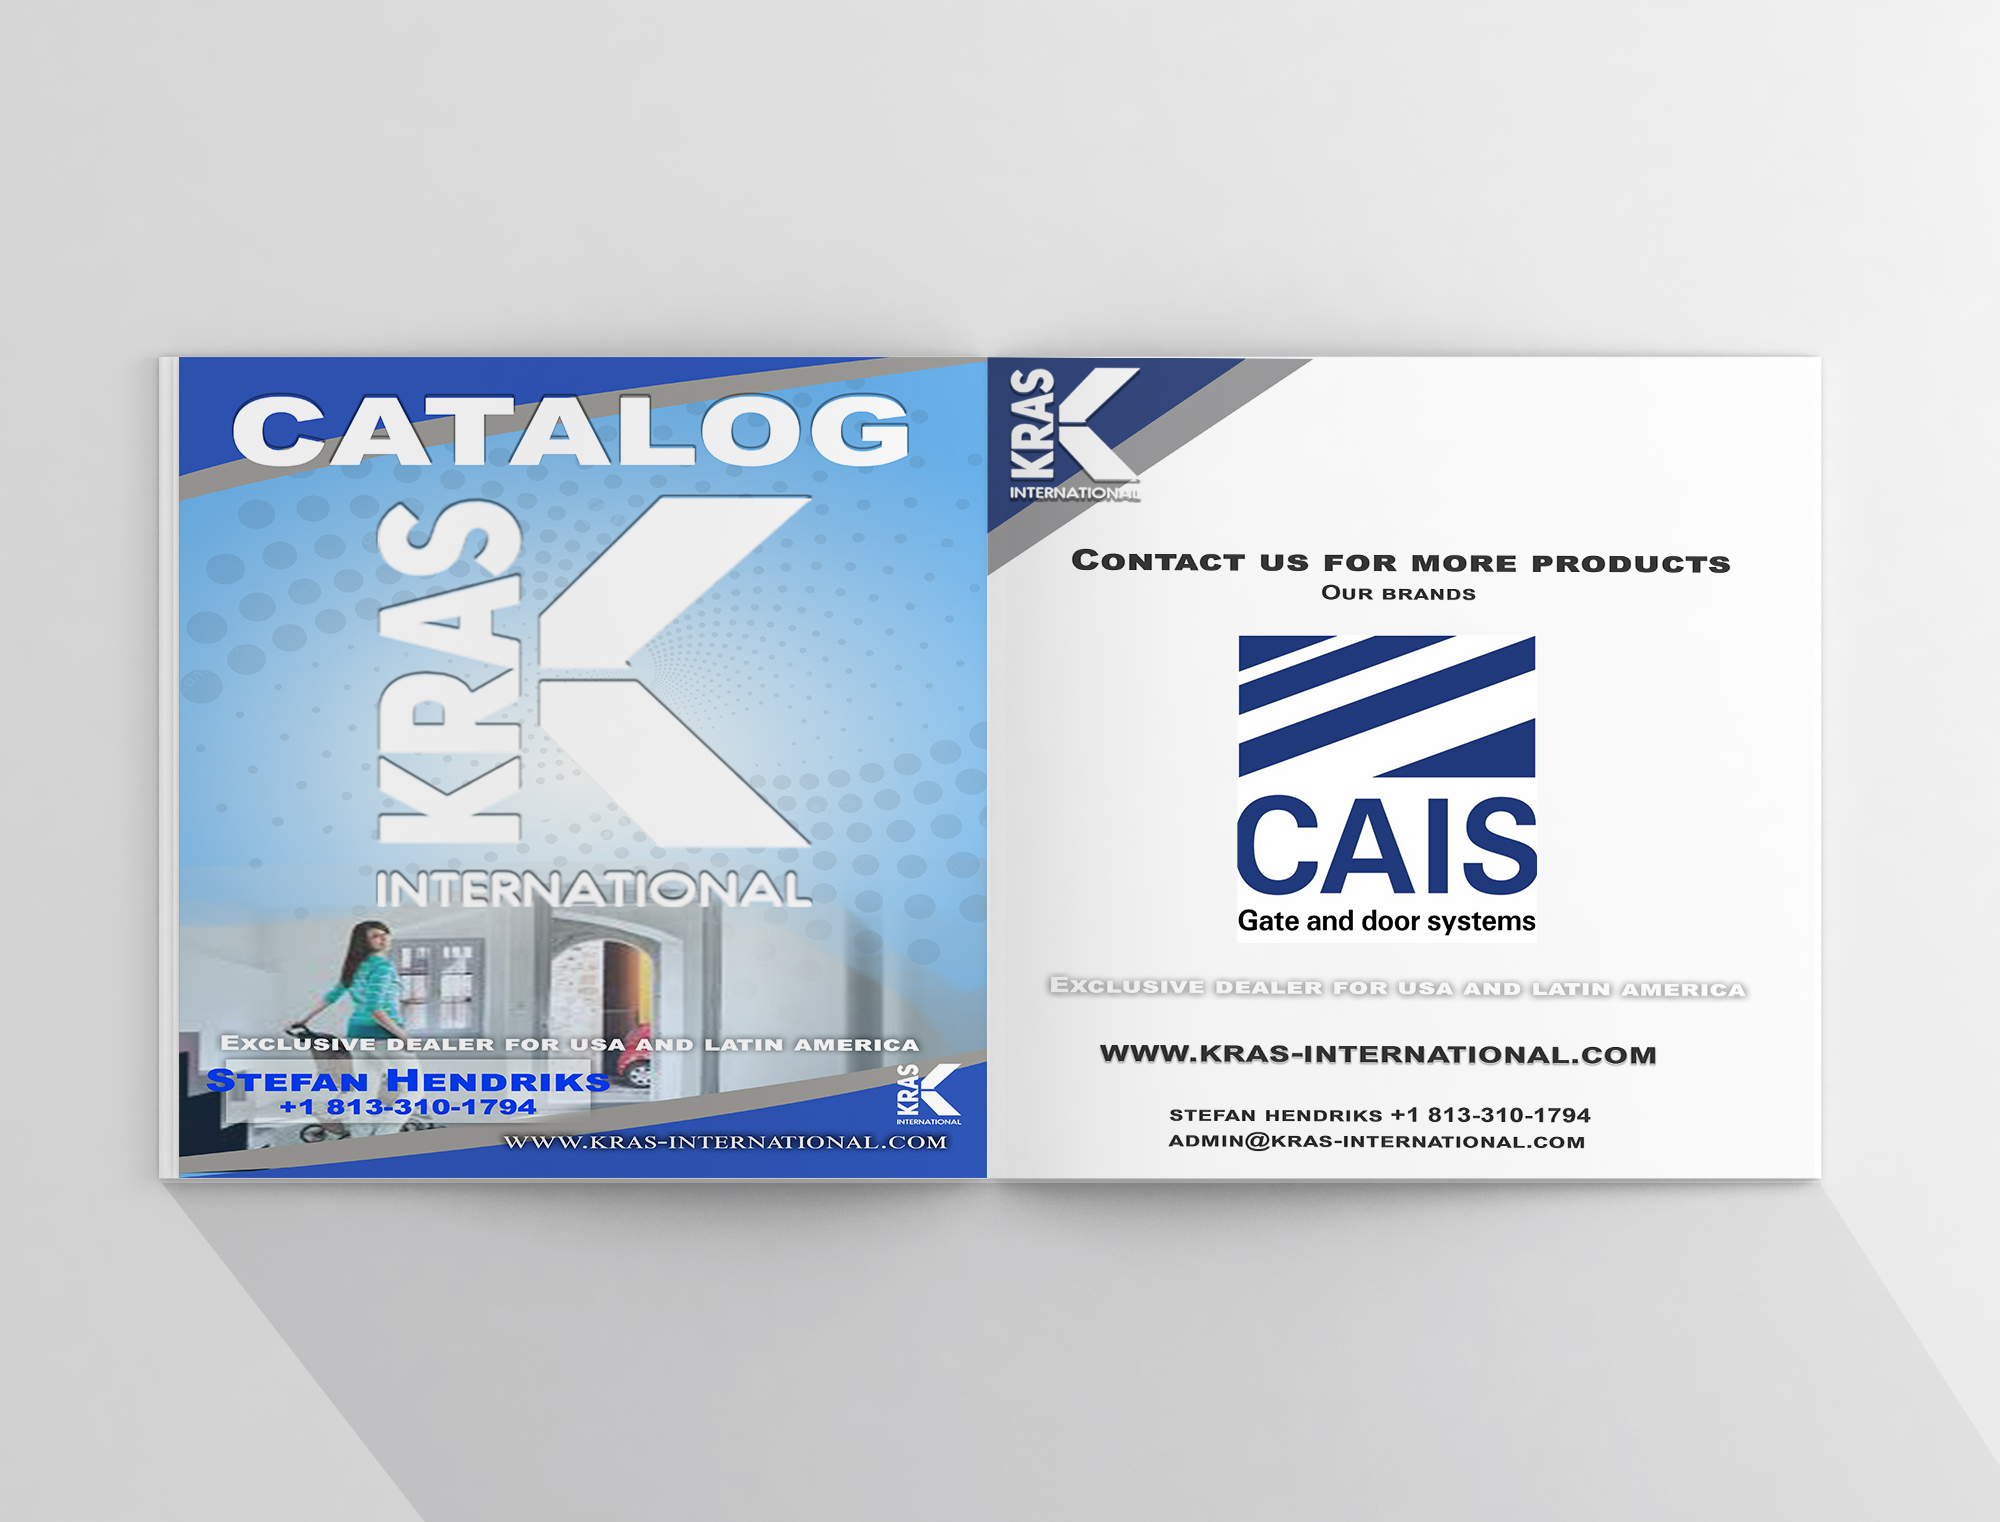 Some of our products CAIS